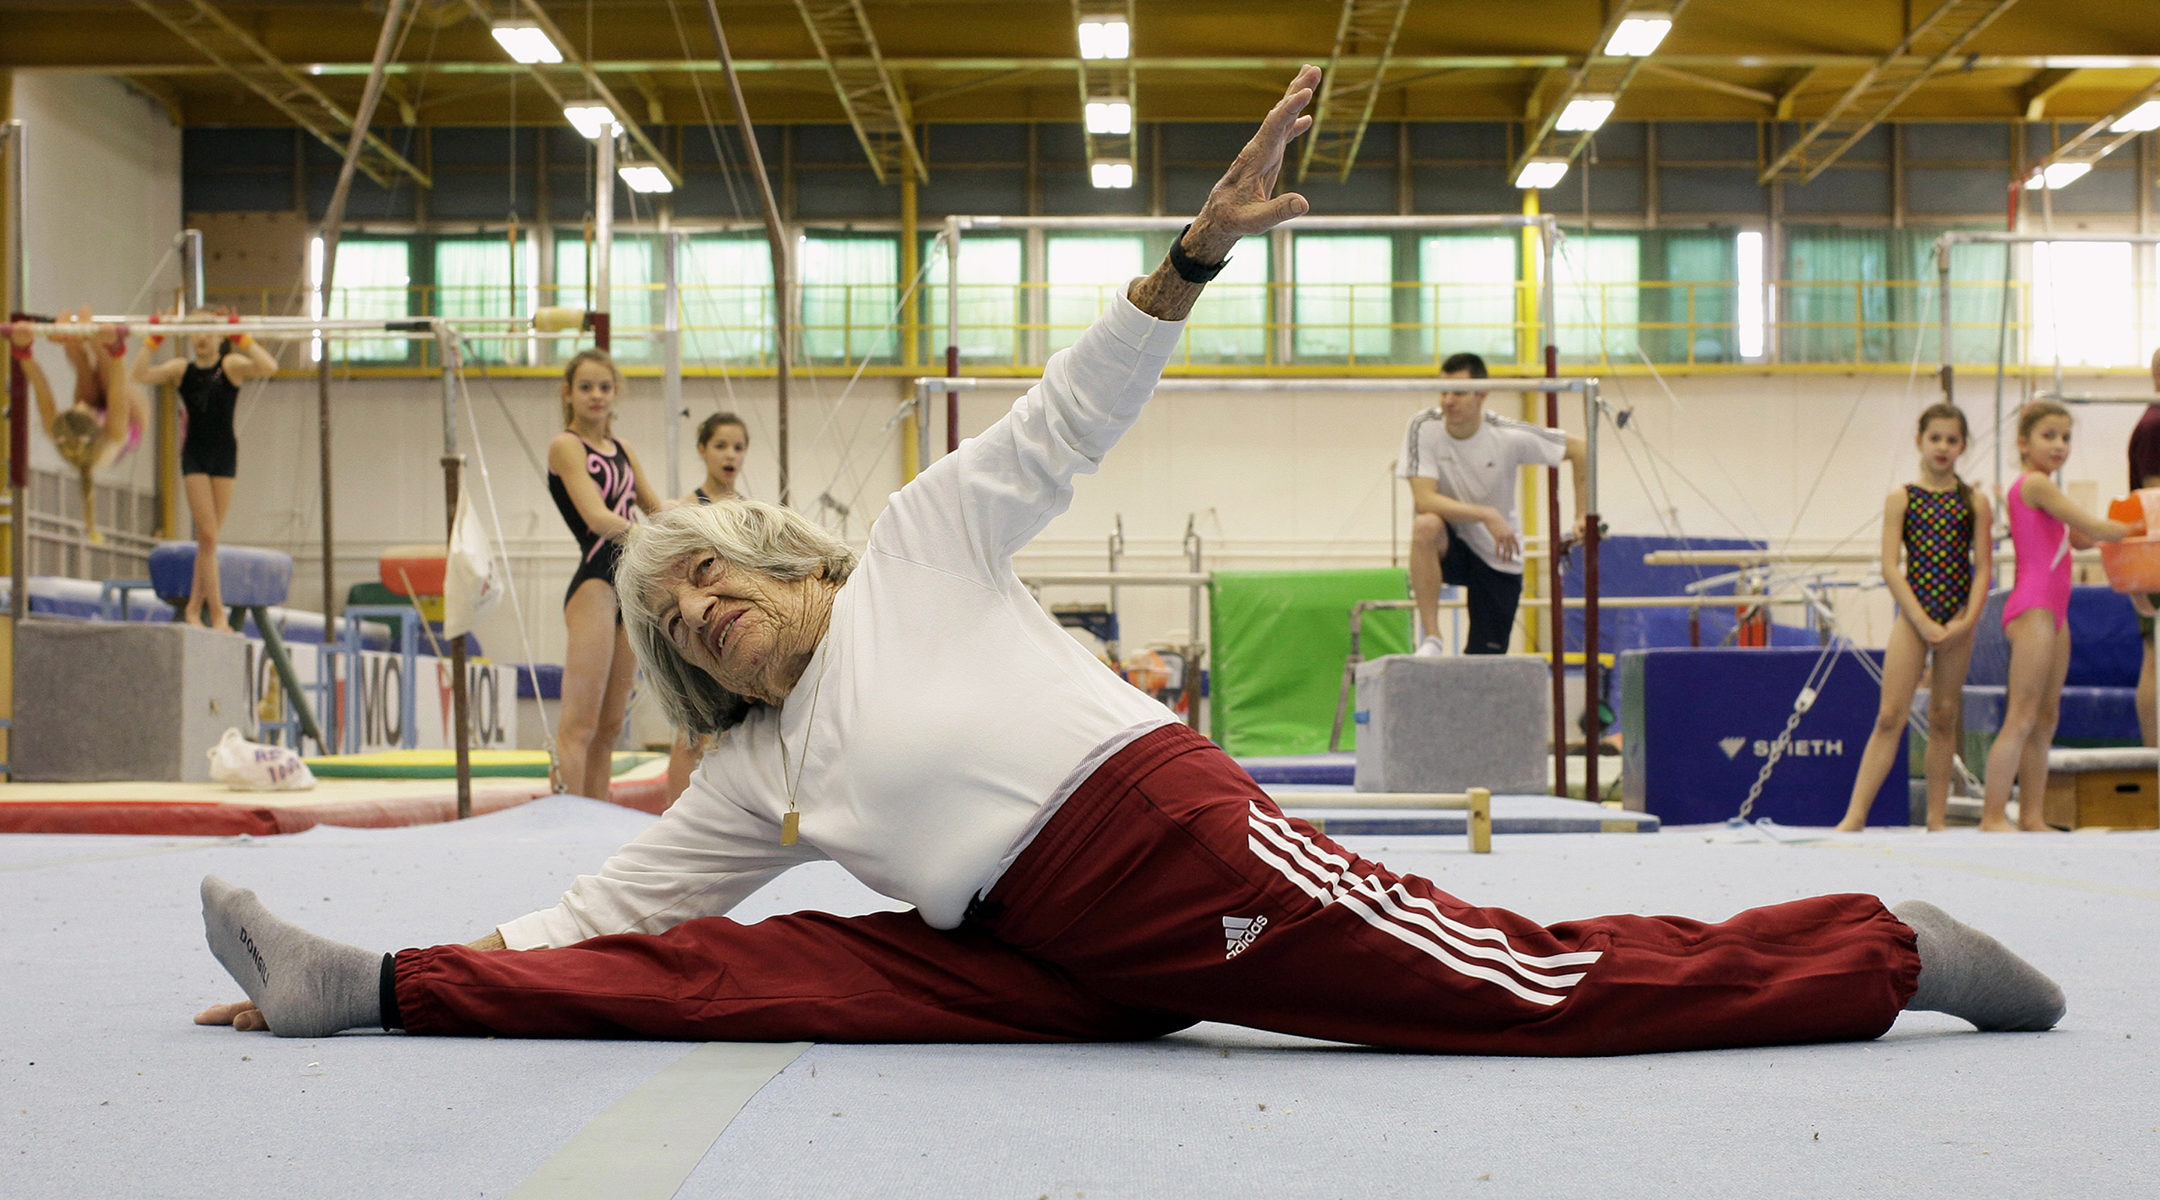 Gymnast Agnes Keleti survived the Holocaust to win 10 Olympic medals